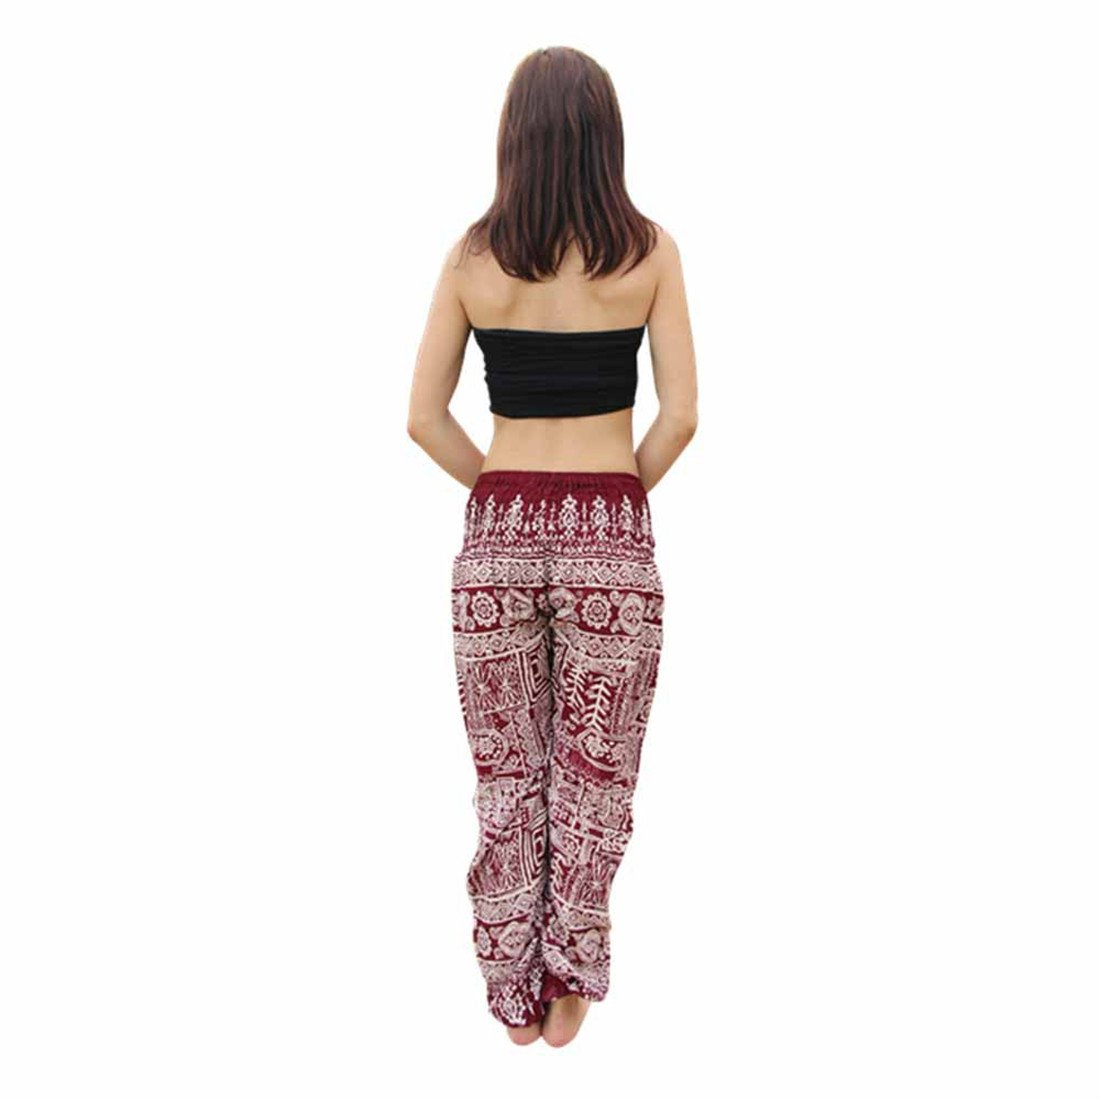 d846bce16b Womens Yoga Pants,YKA,Men Thai Harem Trousers Boho Festival Hippy Smock High  Waist Pants for Ladies - Purple - Free Size: Amazon.co.uk: Clothing